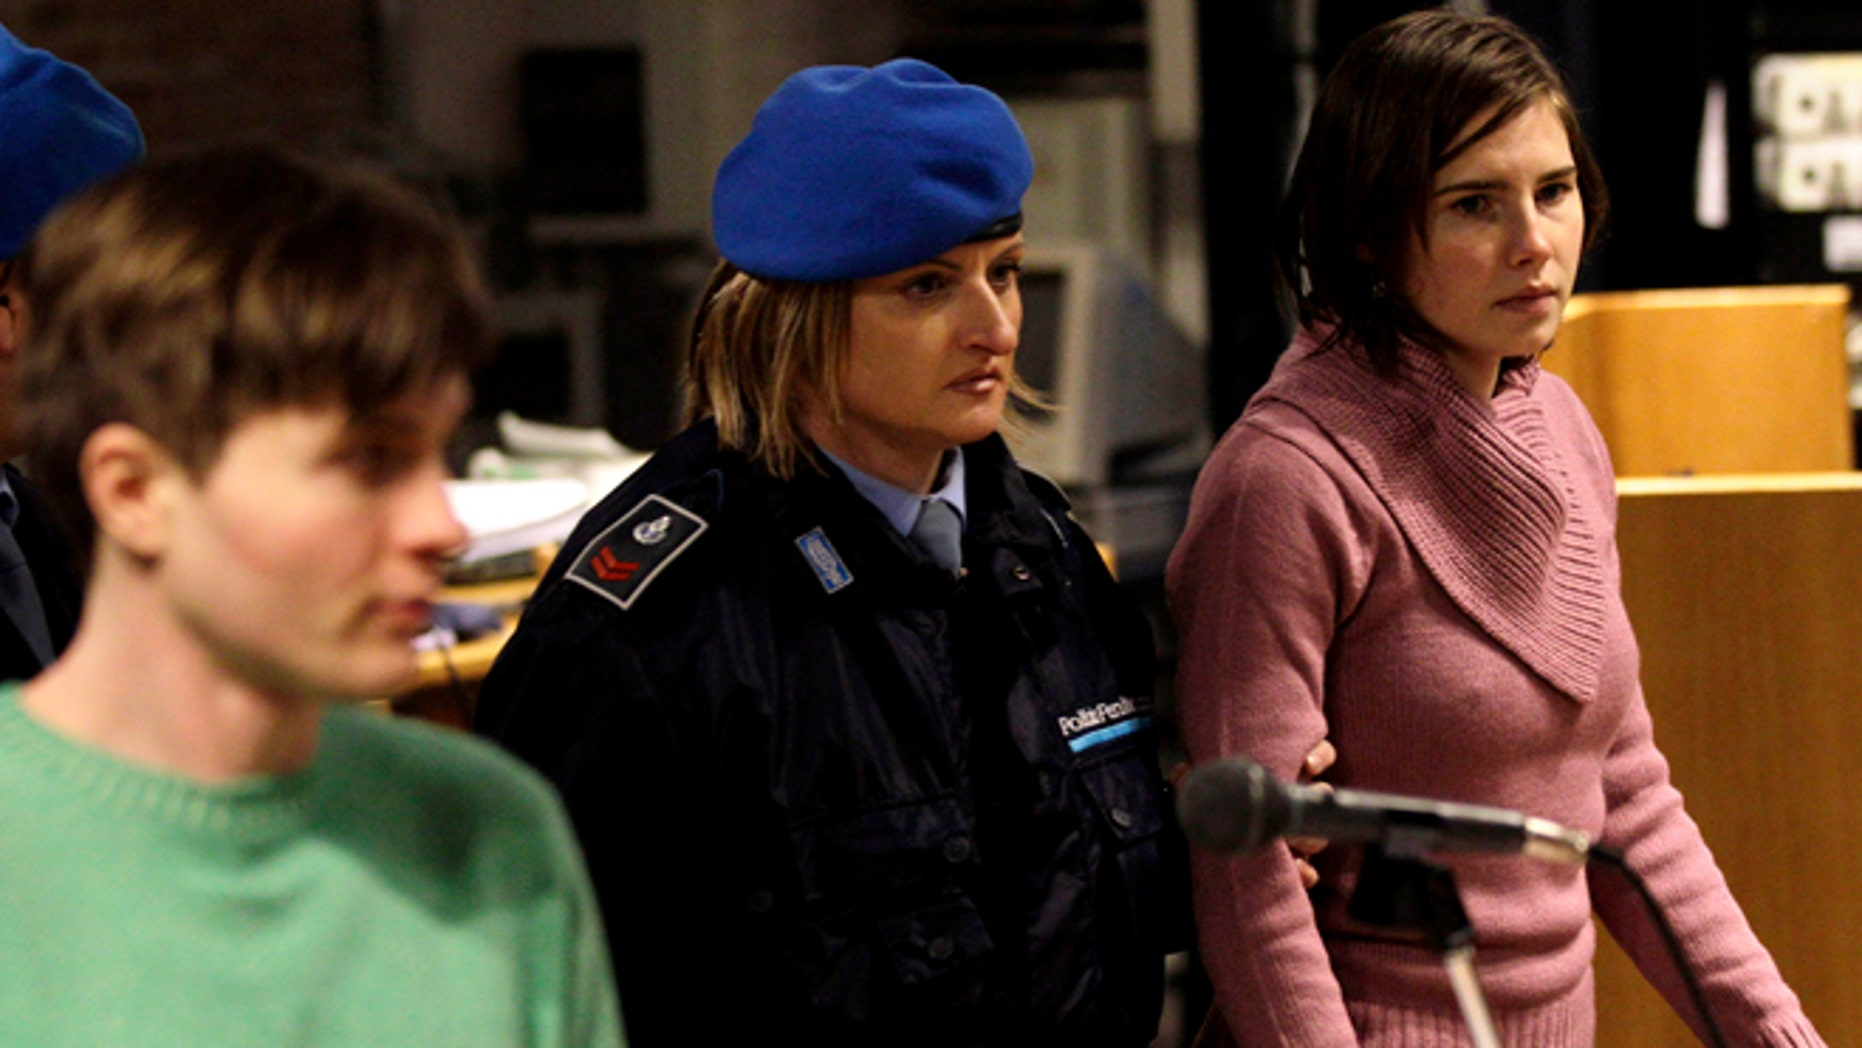 Dec. 18, 2010: In this file photo, U.S. student Amanda Knox, right, walks past Raffaele Sollecito, as she arrives after a break to attend a hearing in her appeals trial at Perugia's courthouse in Italy. Italy's highest criminal court has overturned the acquittal of Amanda Knox and of her former Italian boyfriend, Raffaele Sollecito, in the slaying of her British roommate and ordered a new trial.